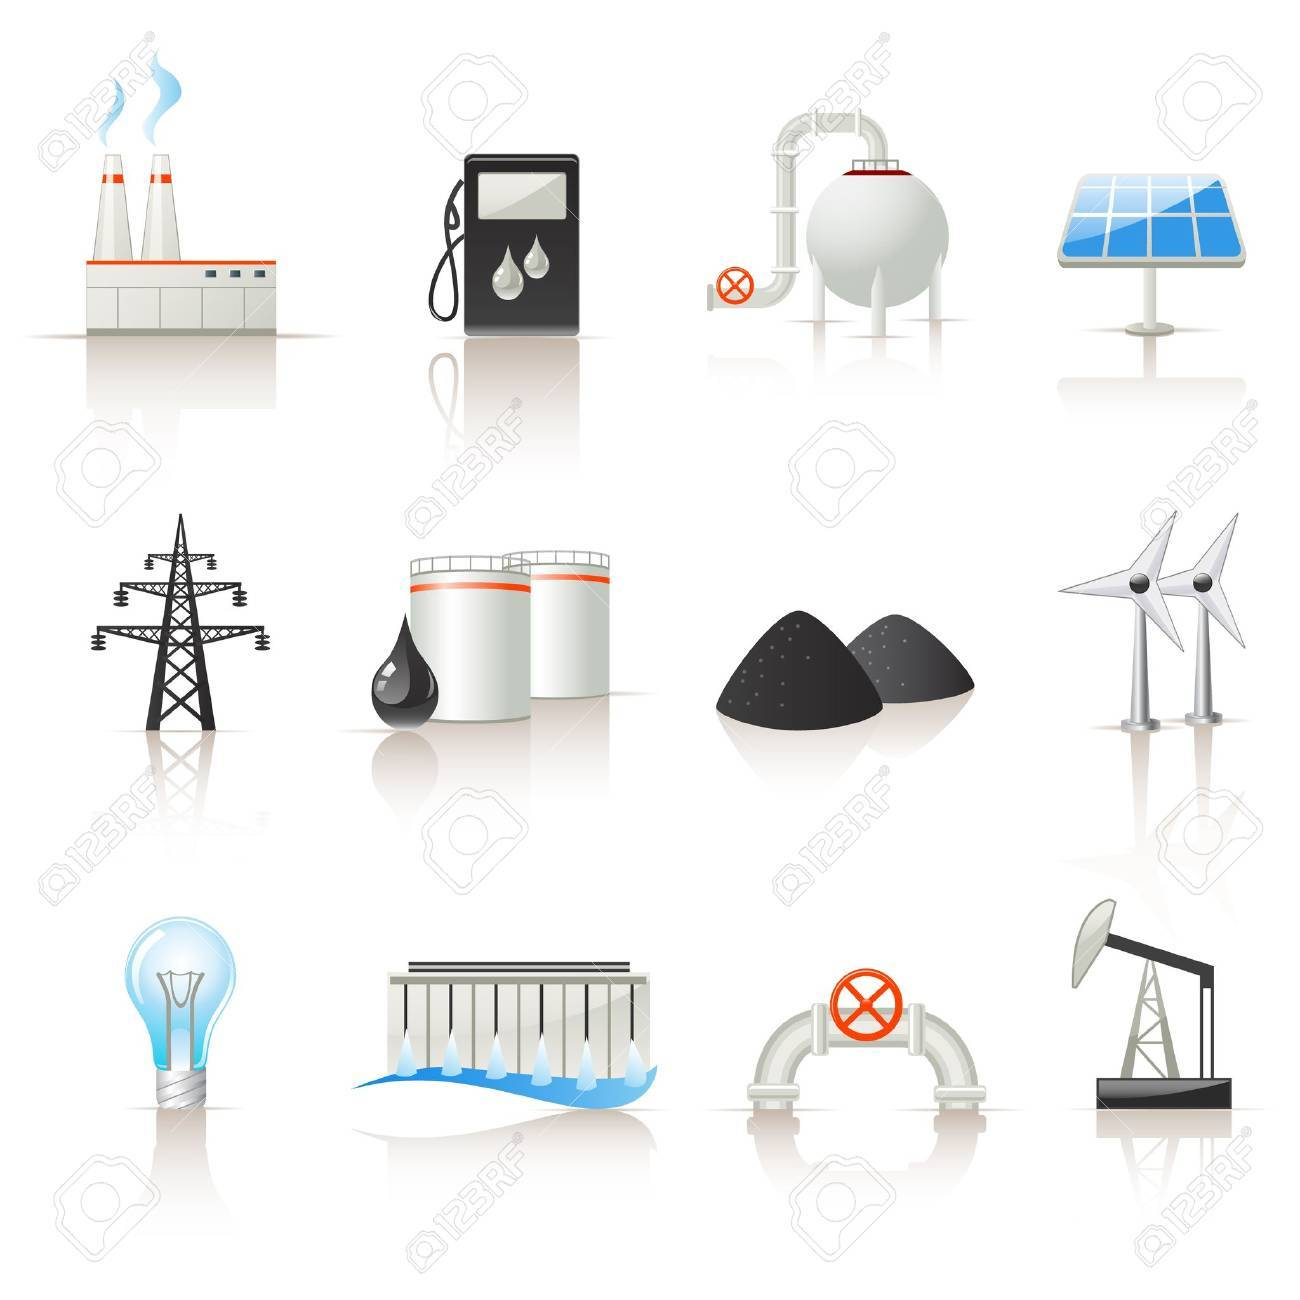 Power industry icon set Stock Vector - 12489503